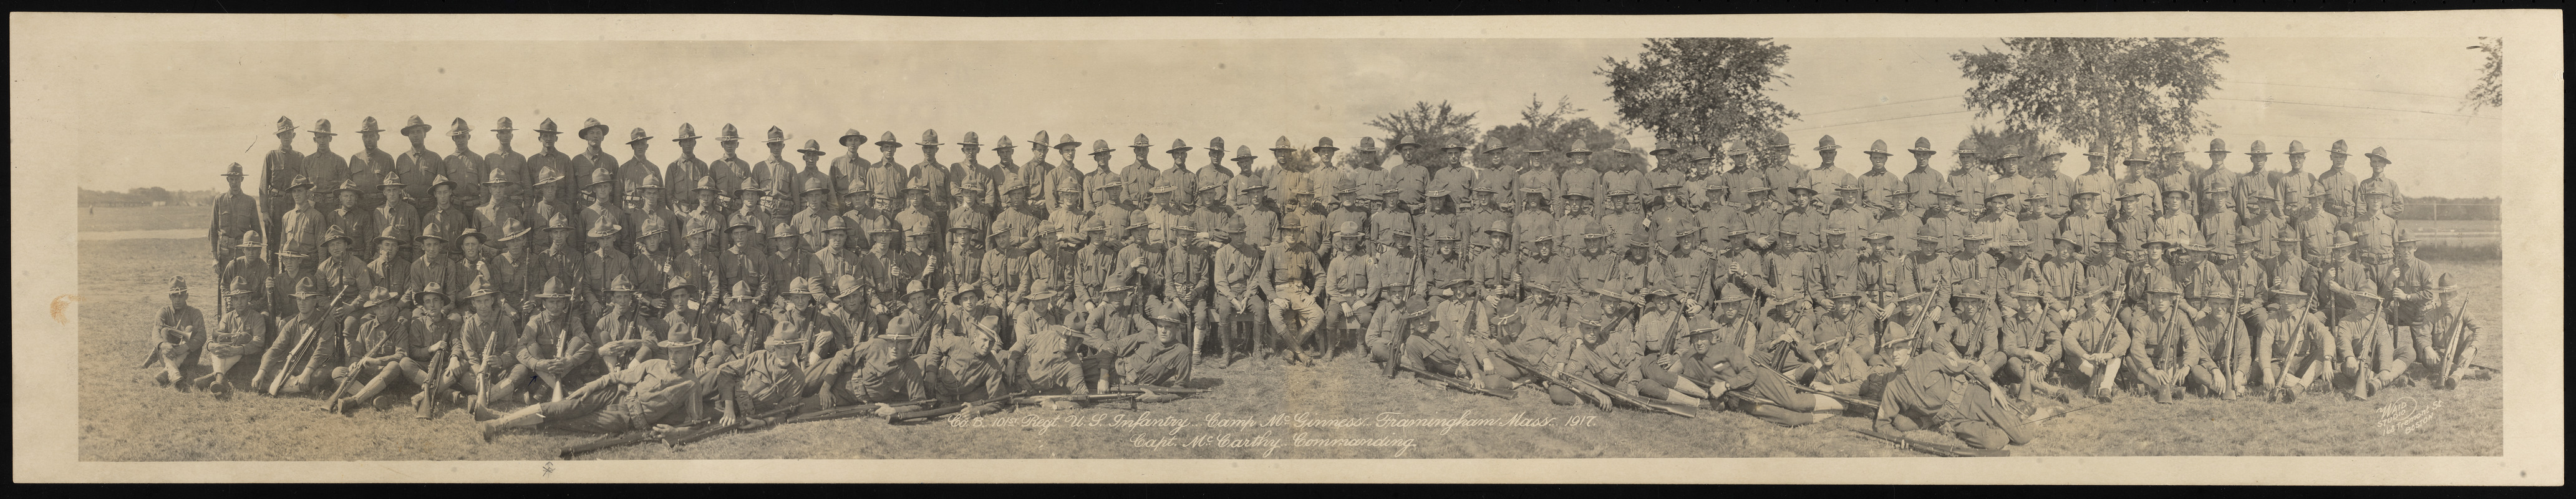 Co. B, 101st Regt. U.S. Infantry, Camp McGinness, Framingham Mass, 1917. Capt. McCarthy commanding